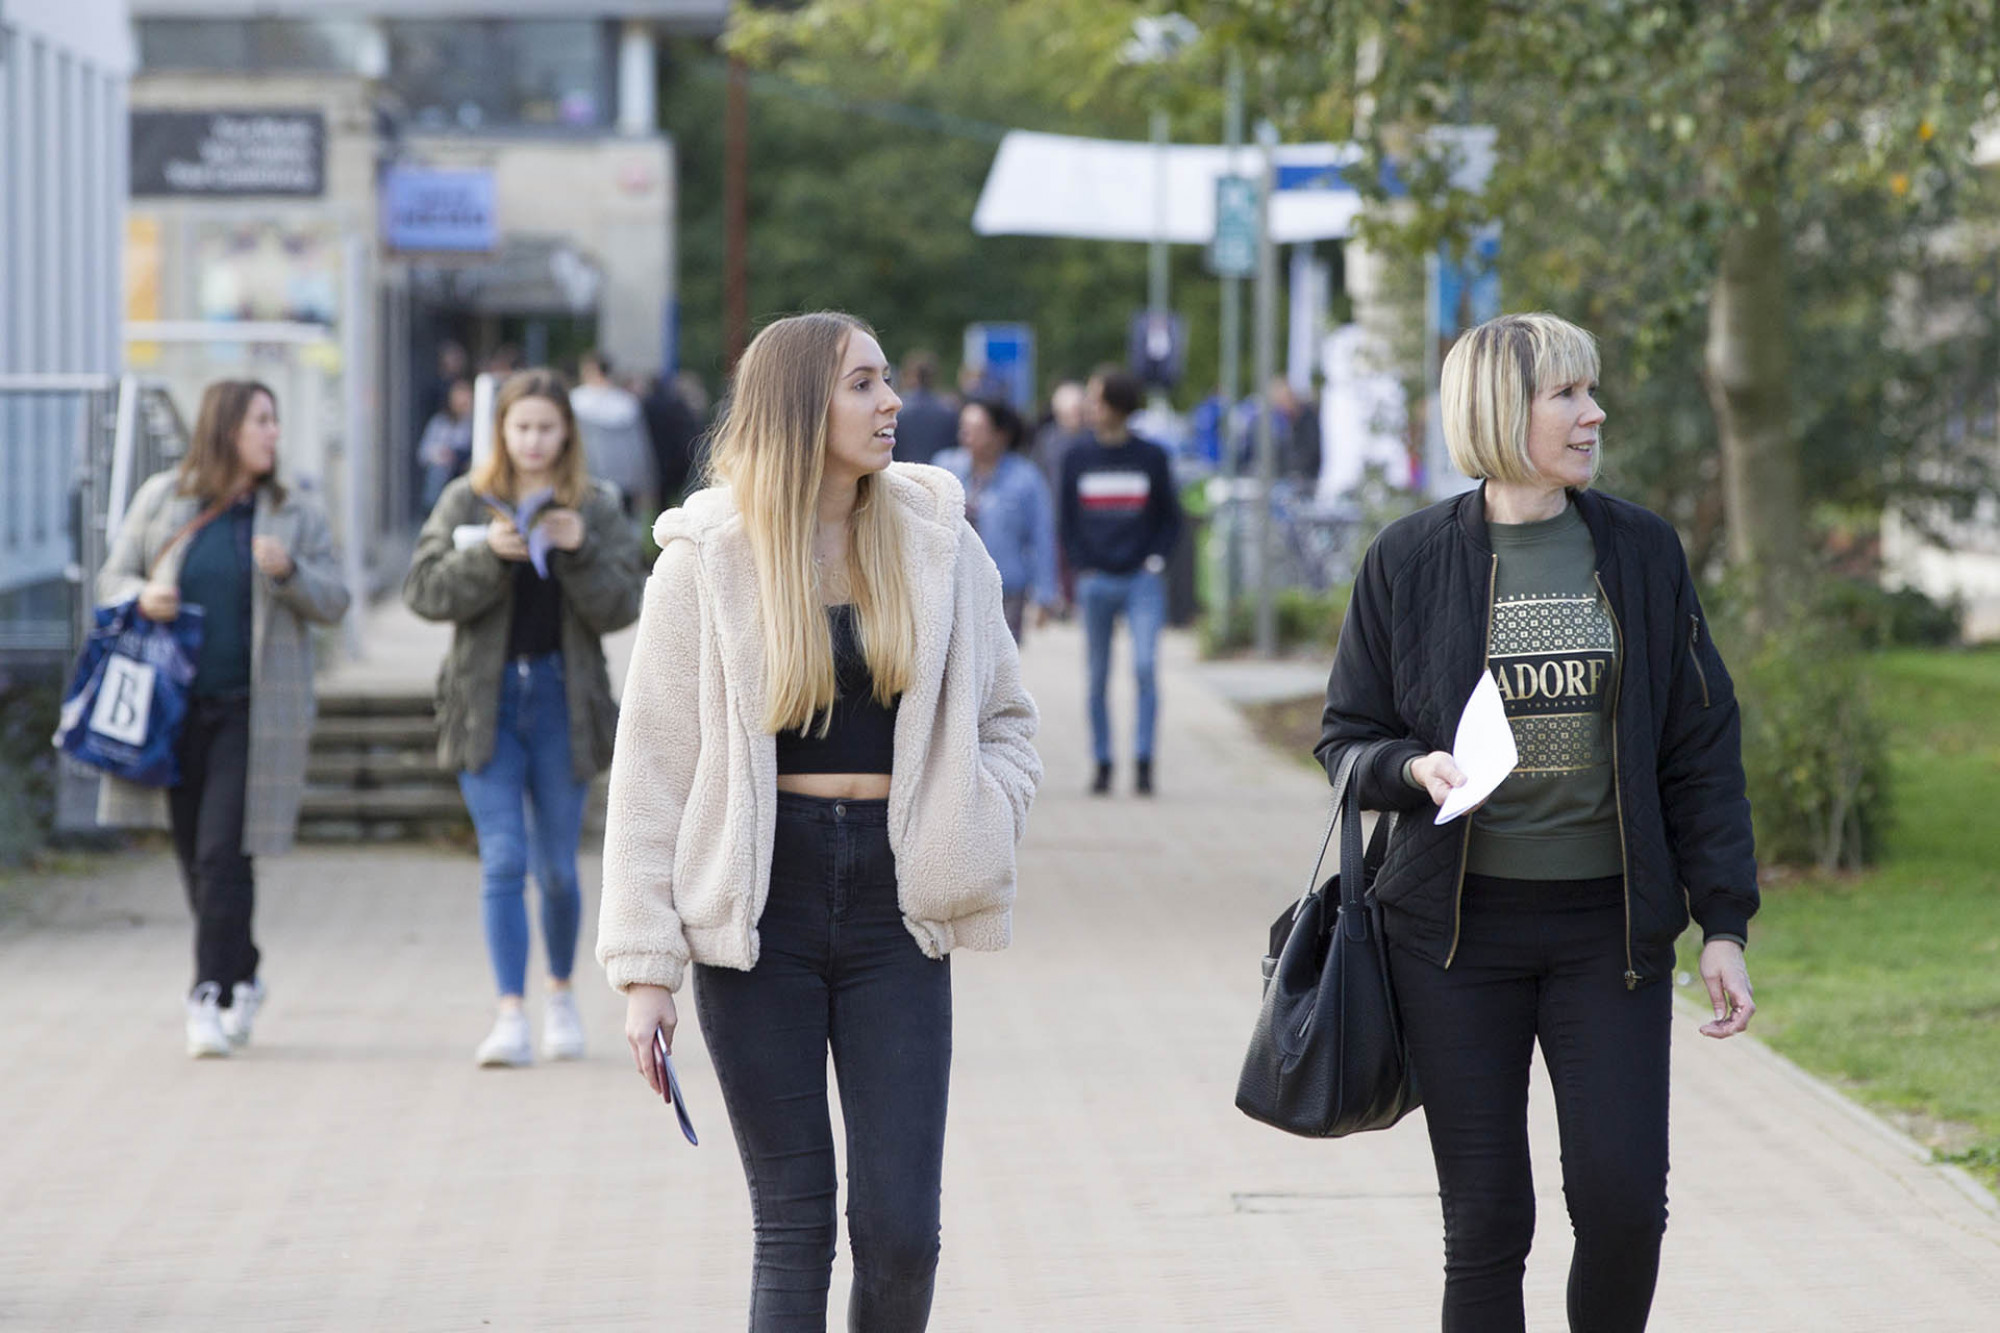 Mother and daughter walking around campus